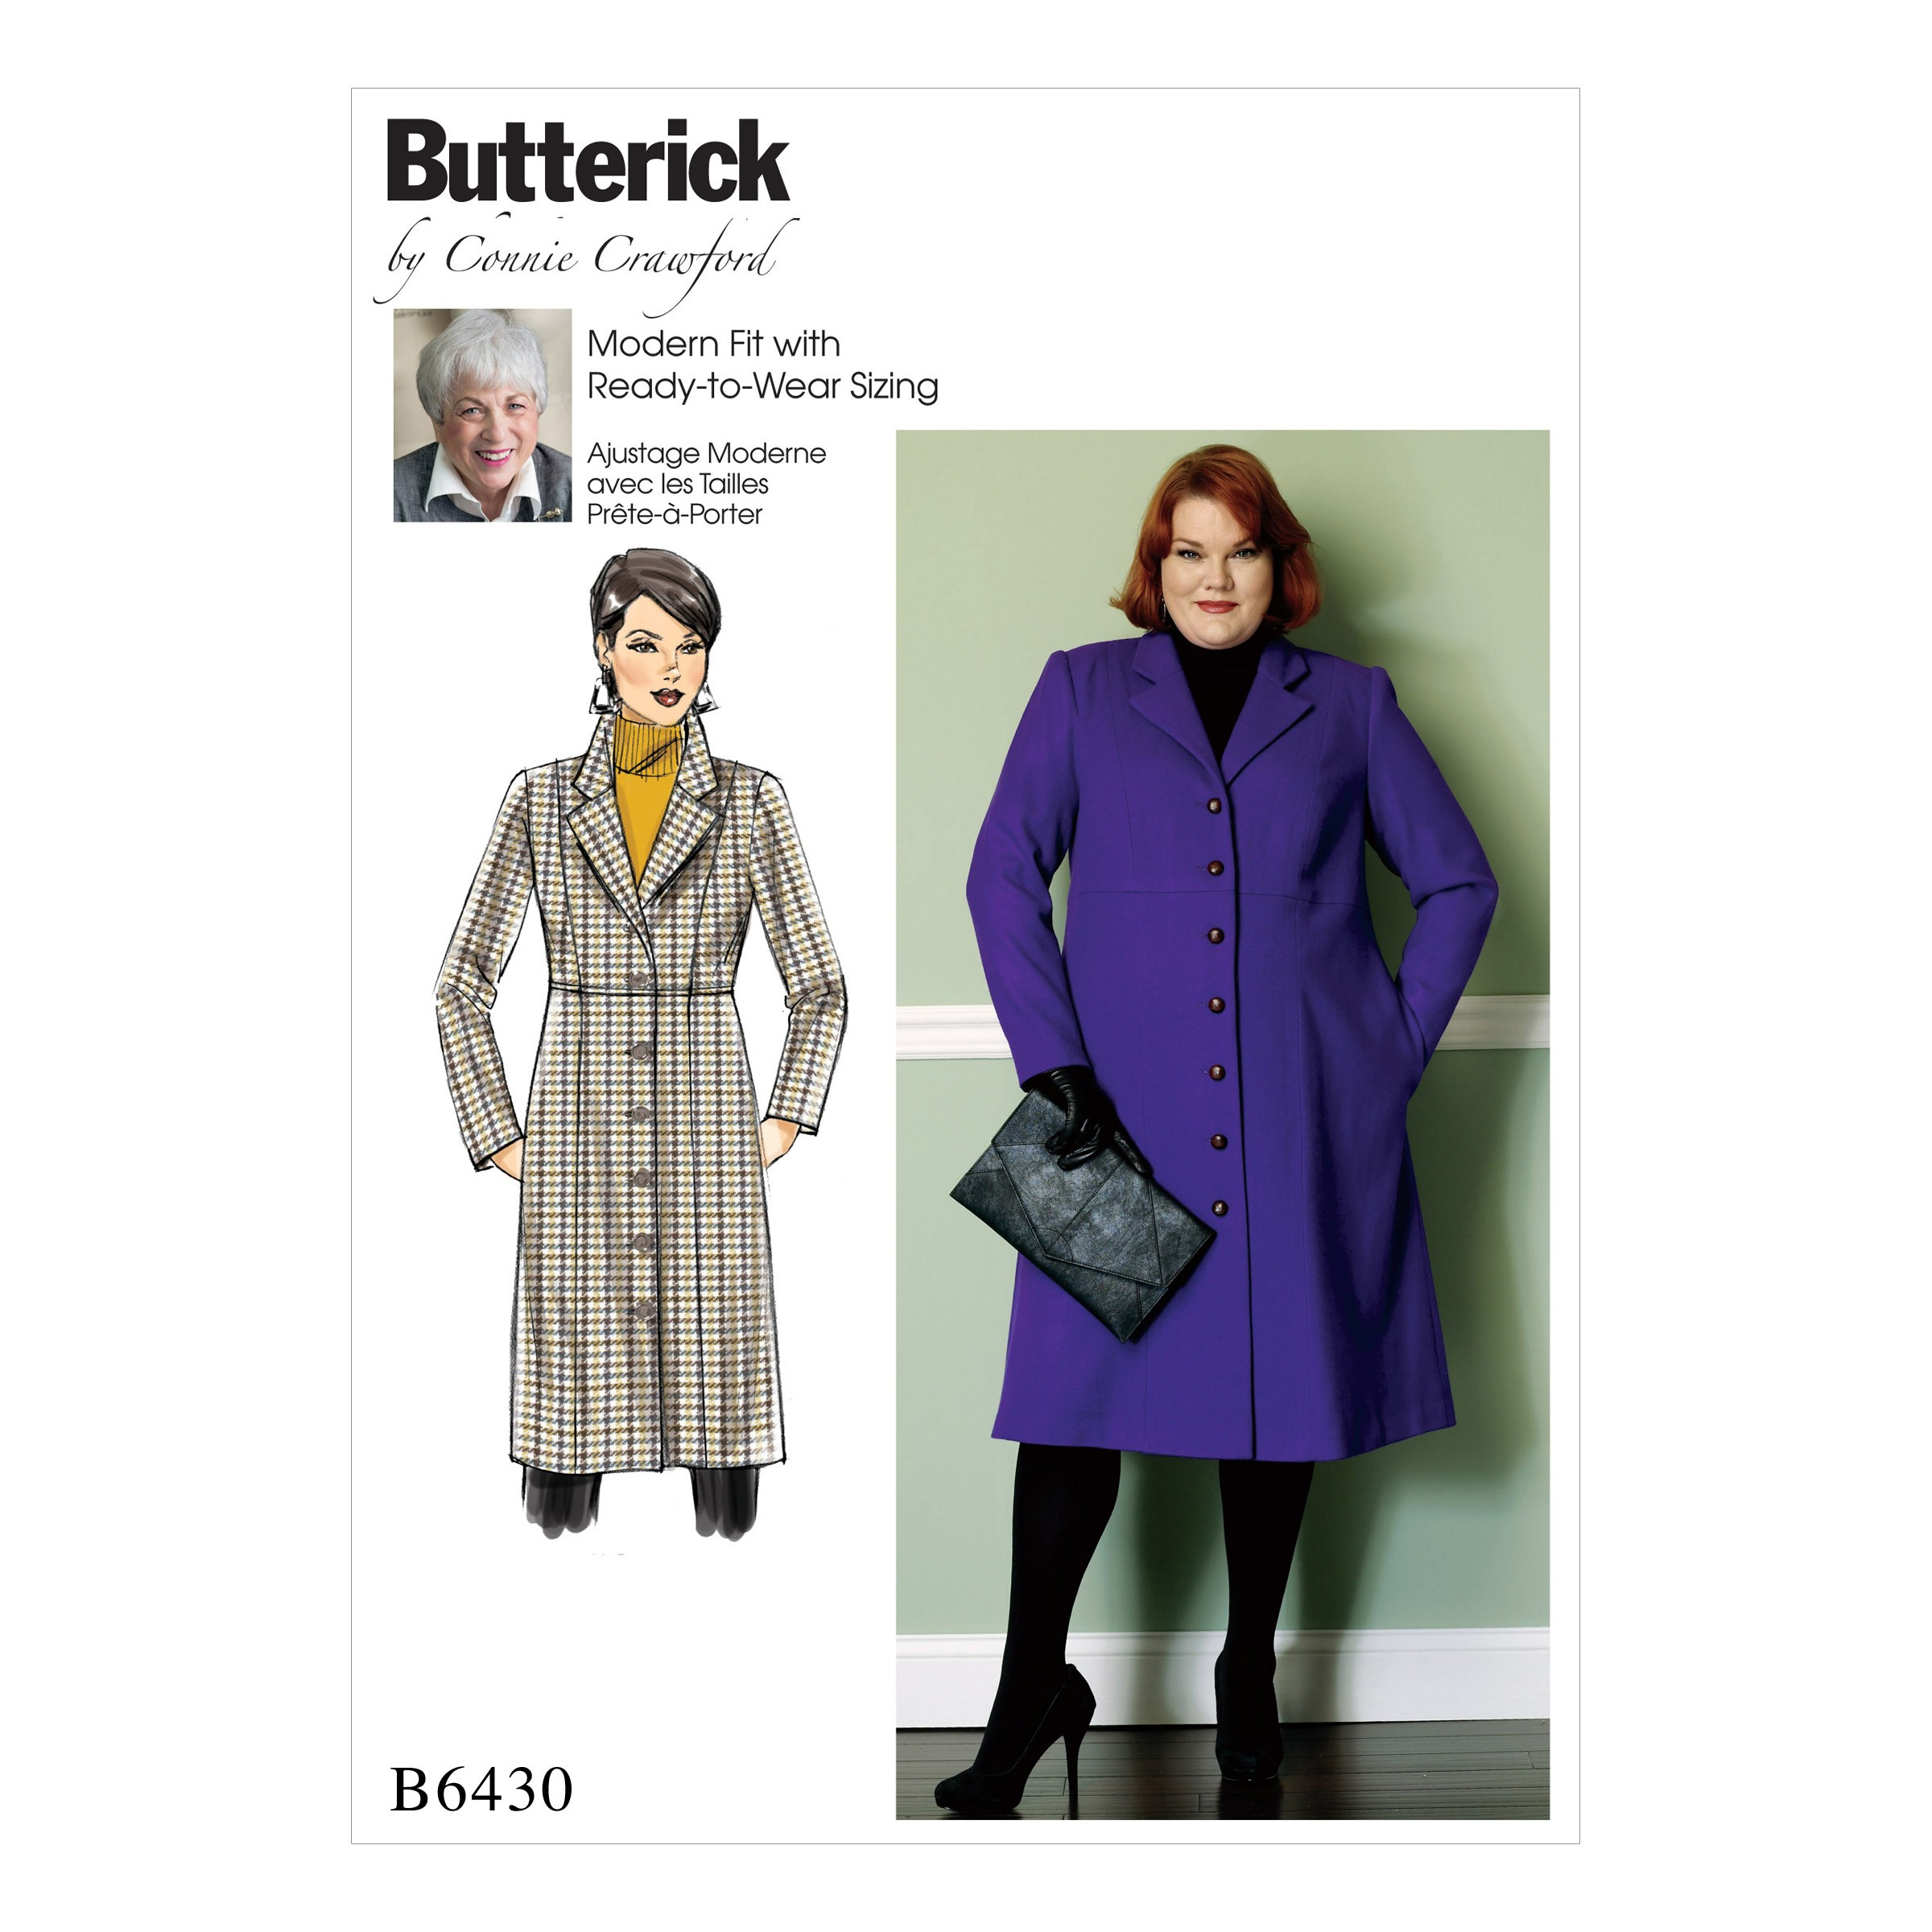 Butterick Sewing Pattern 6430 Misses' Empire Waist Coat with Princess Seams